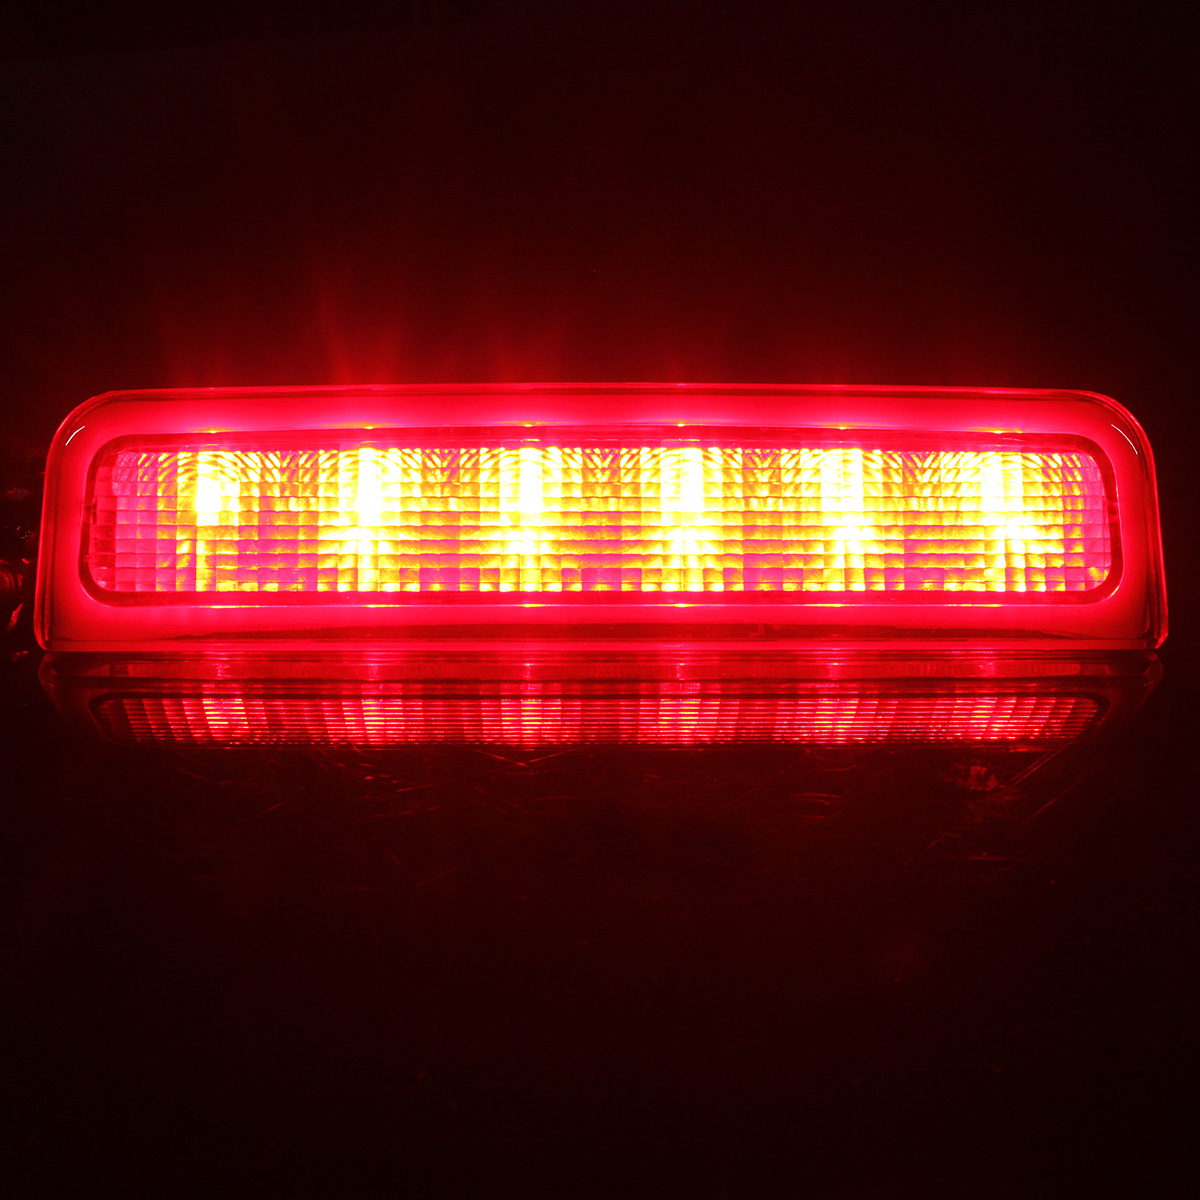 LED Car Rear High Mount Stop Lamp Third Brake Light Red for VW Caddy 2003-2014 2K0945087C